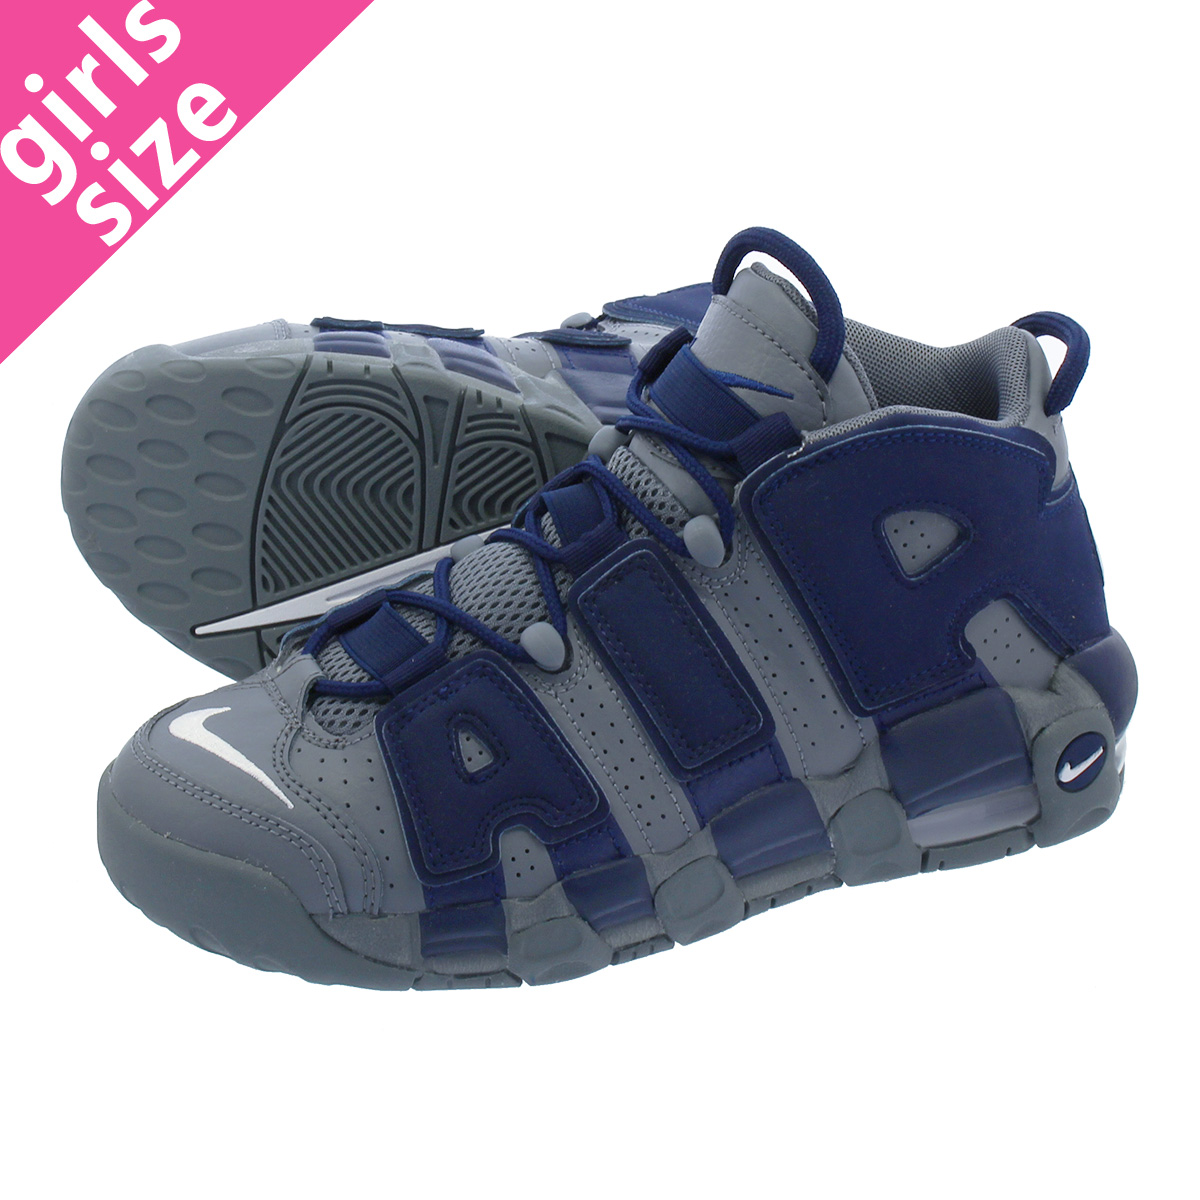 特価商品  【大人気の女の子サイズ♪】 NIKE AIR MORE UPTEMPO UPTEMPO GS ナイキ アップ 415082-009 モア アップ テンポ GS COOL GREY/MIDNIGHT NAVY 415082-009, rayon:765f171f --- supercanaltv.zonalivresh.dominiotemporario.com